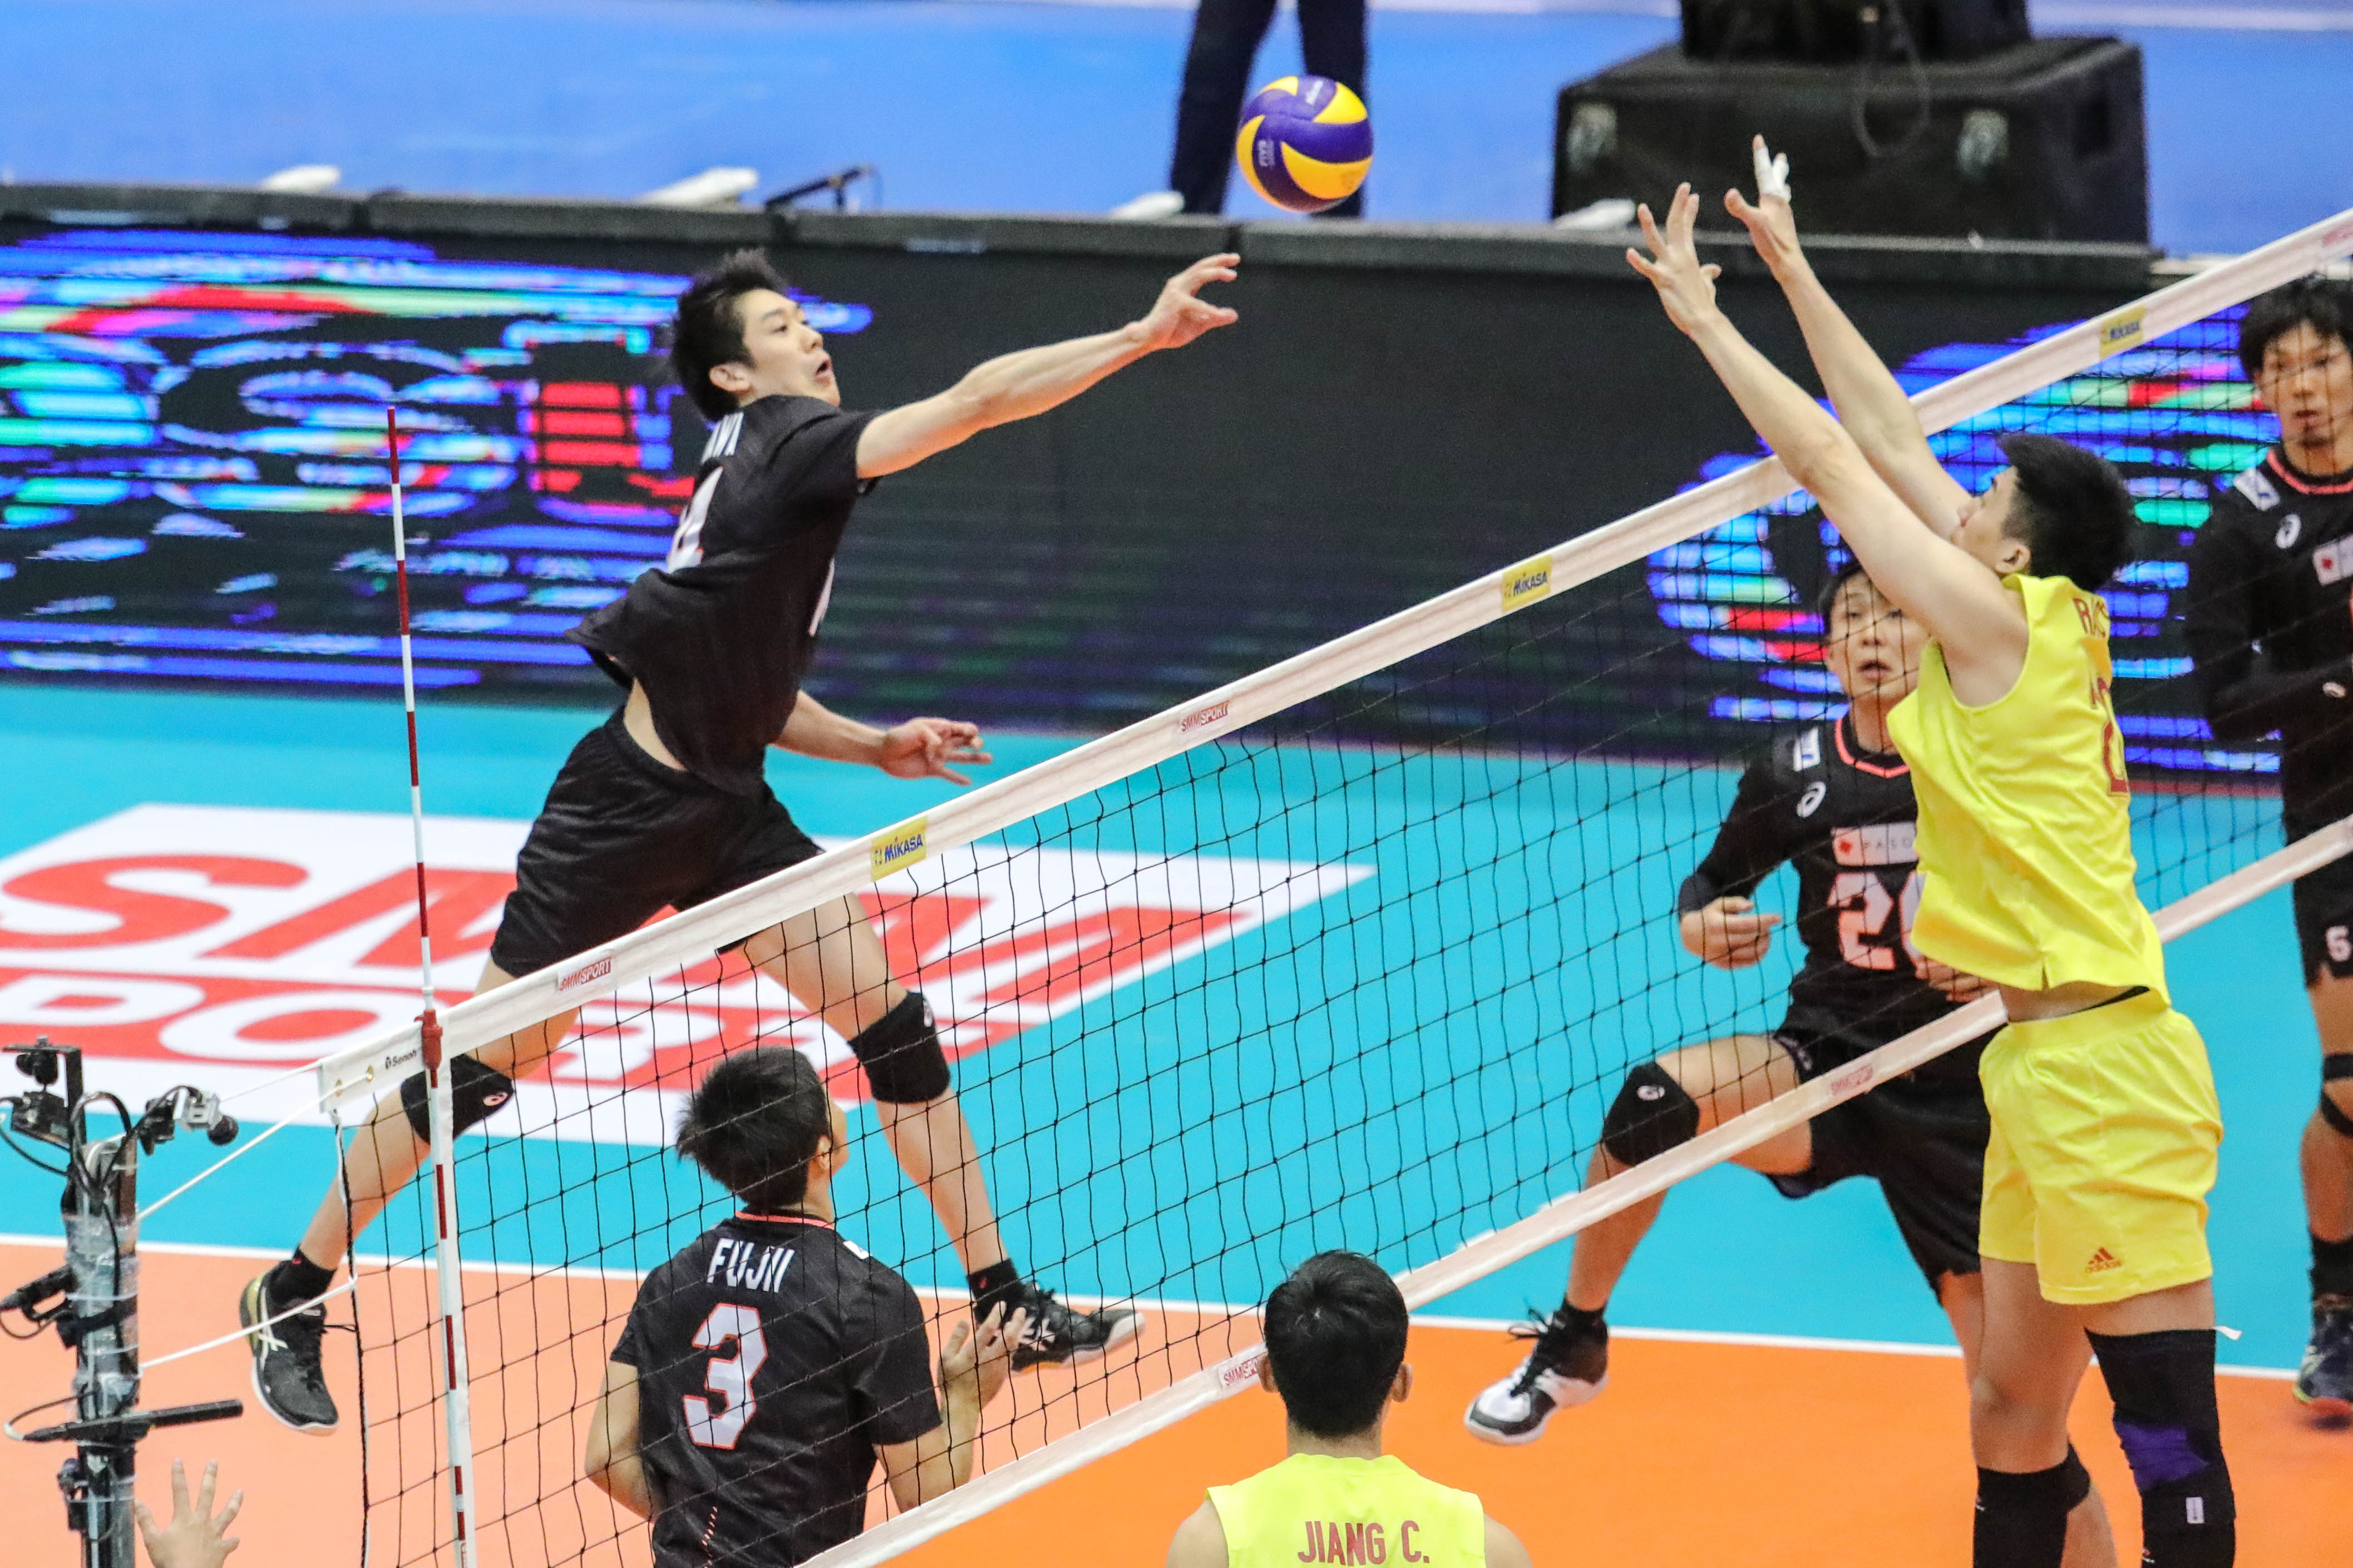 ISHIKAWA LEADS CLASSY JAPAN TO EXCEPTIONAL FOUR-SET WIN AGAINST CHINA AND SEMI-FINALS